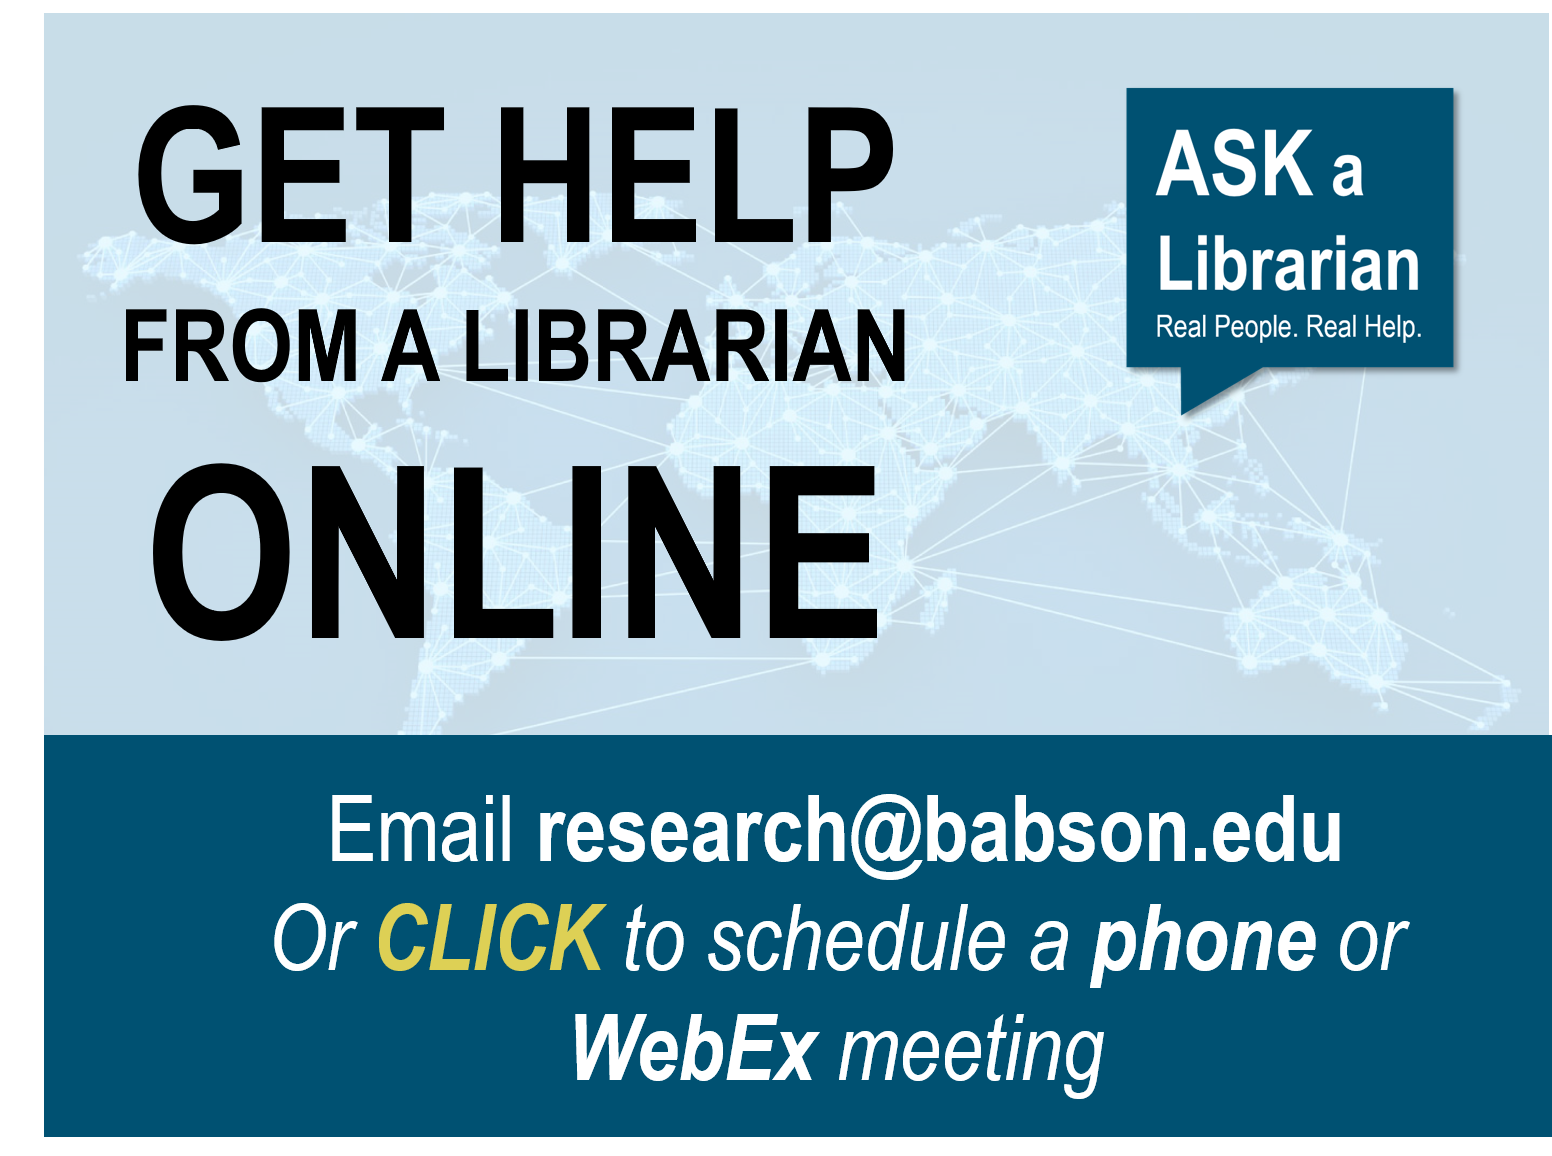 Get Help from a Librarian Online - email research@babson.edu or click to schedule a phone or WebEx Meeting